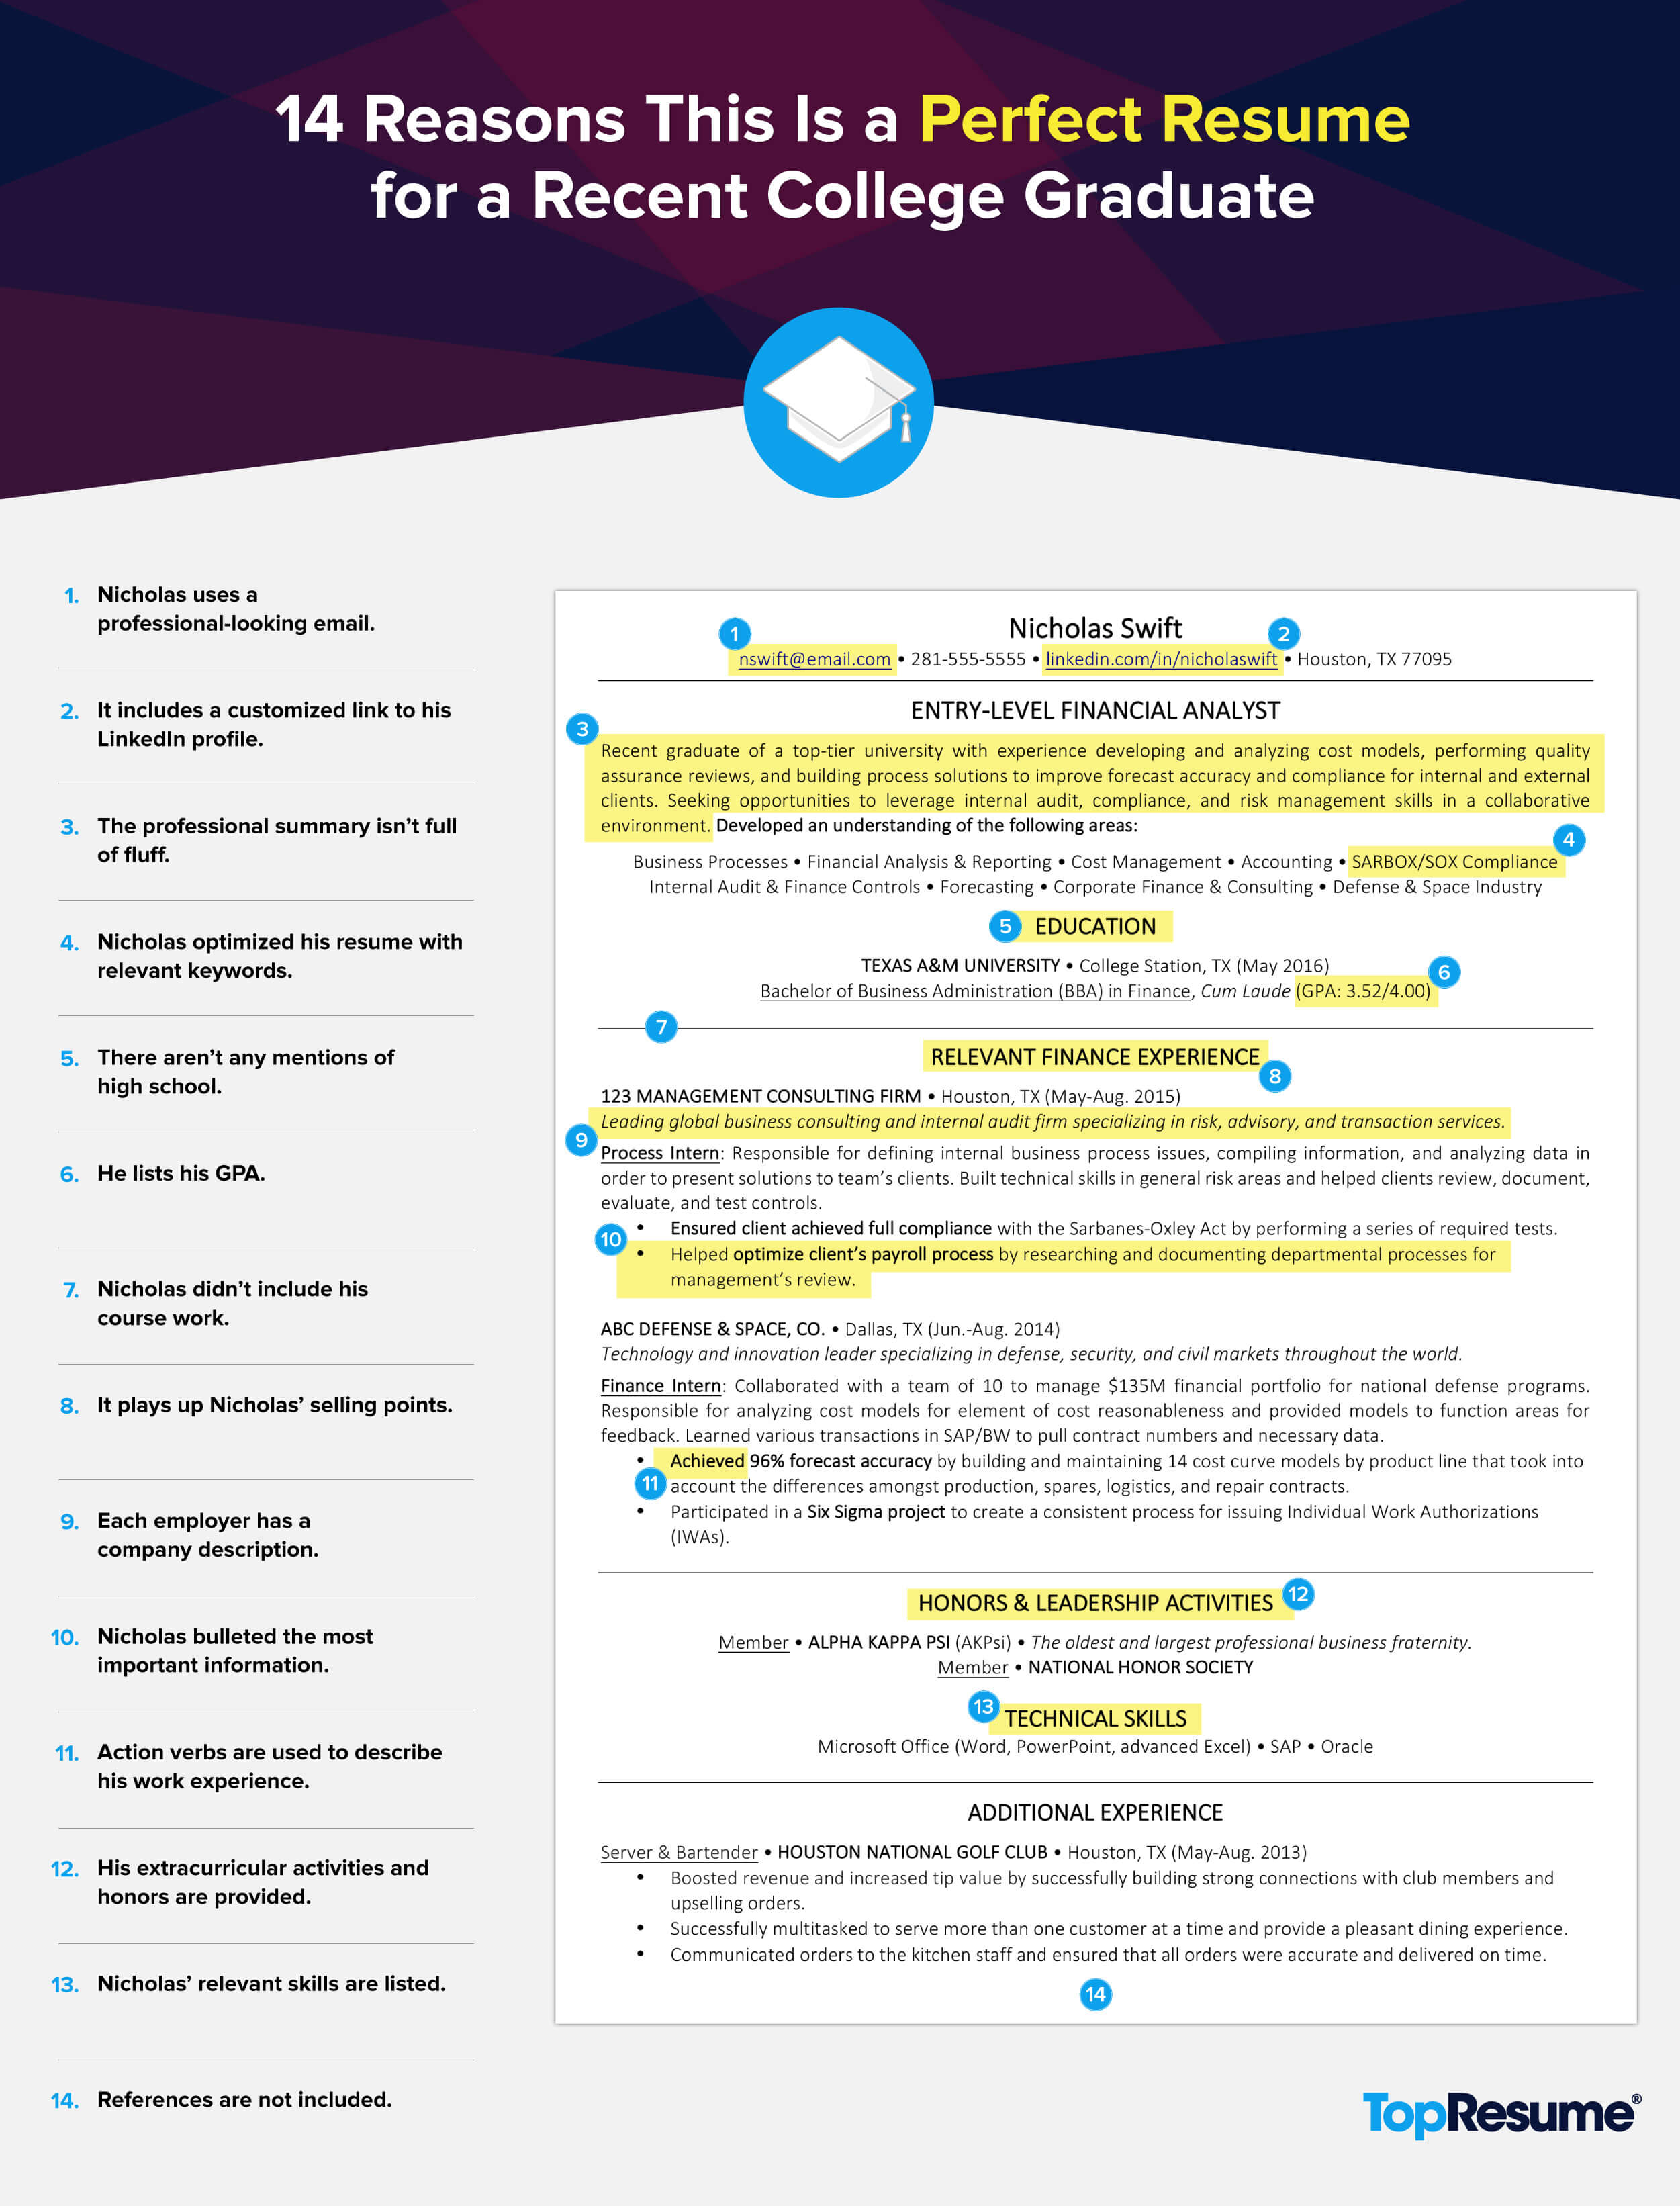 14 reasons this is a perfect recent college graduate resume topresume perfect recent college graduate resume altavistaventures